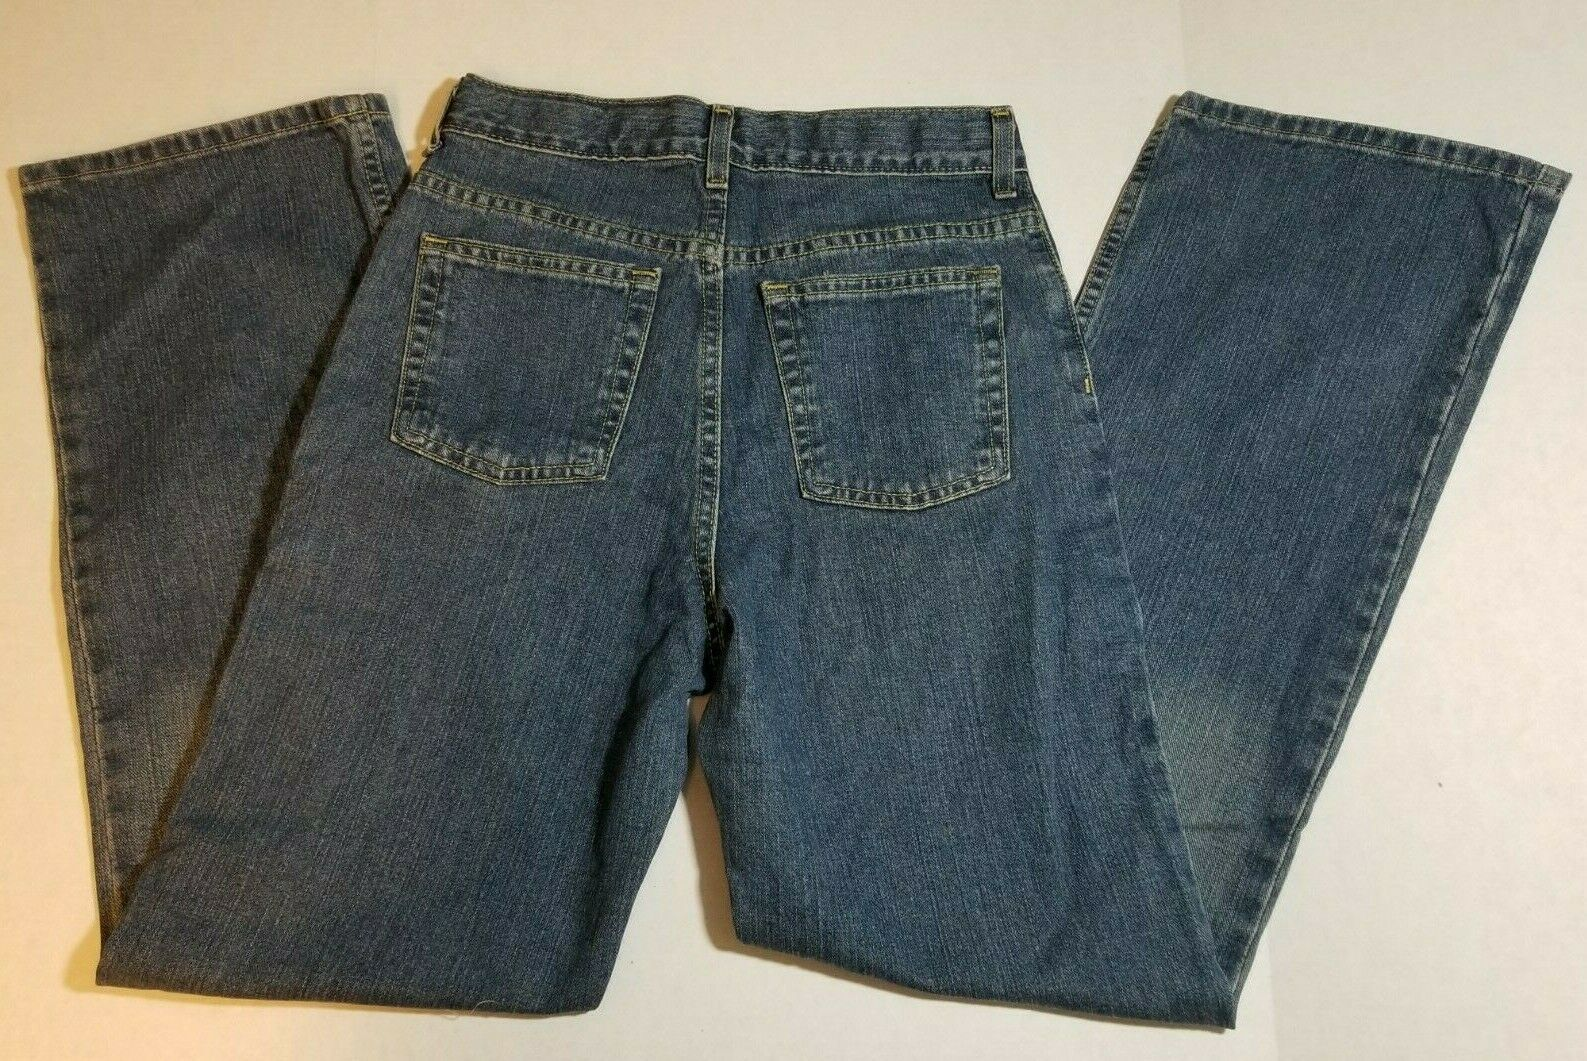 NWT Route 66 Regular Bootcut Boys Youth Jeans Size 16R Medium Wash Pants image 4